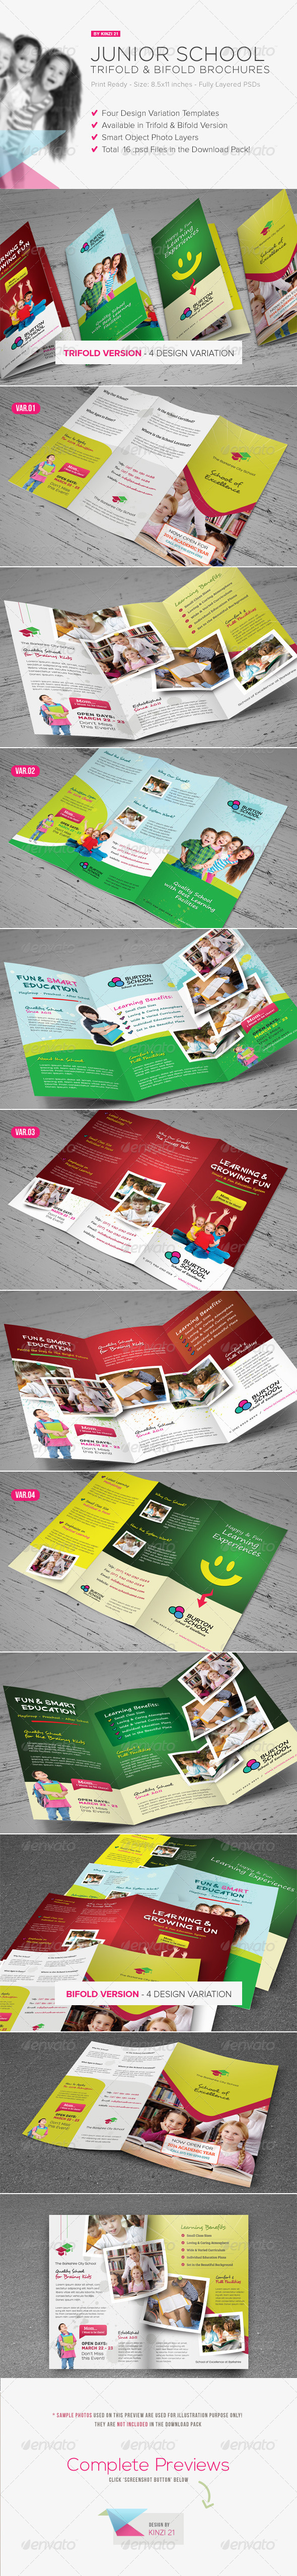 GraphicRiver Junior School Trifold & Bifold Brochures 5029430